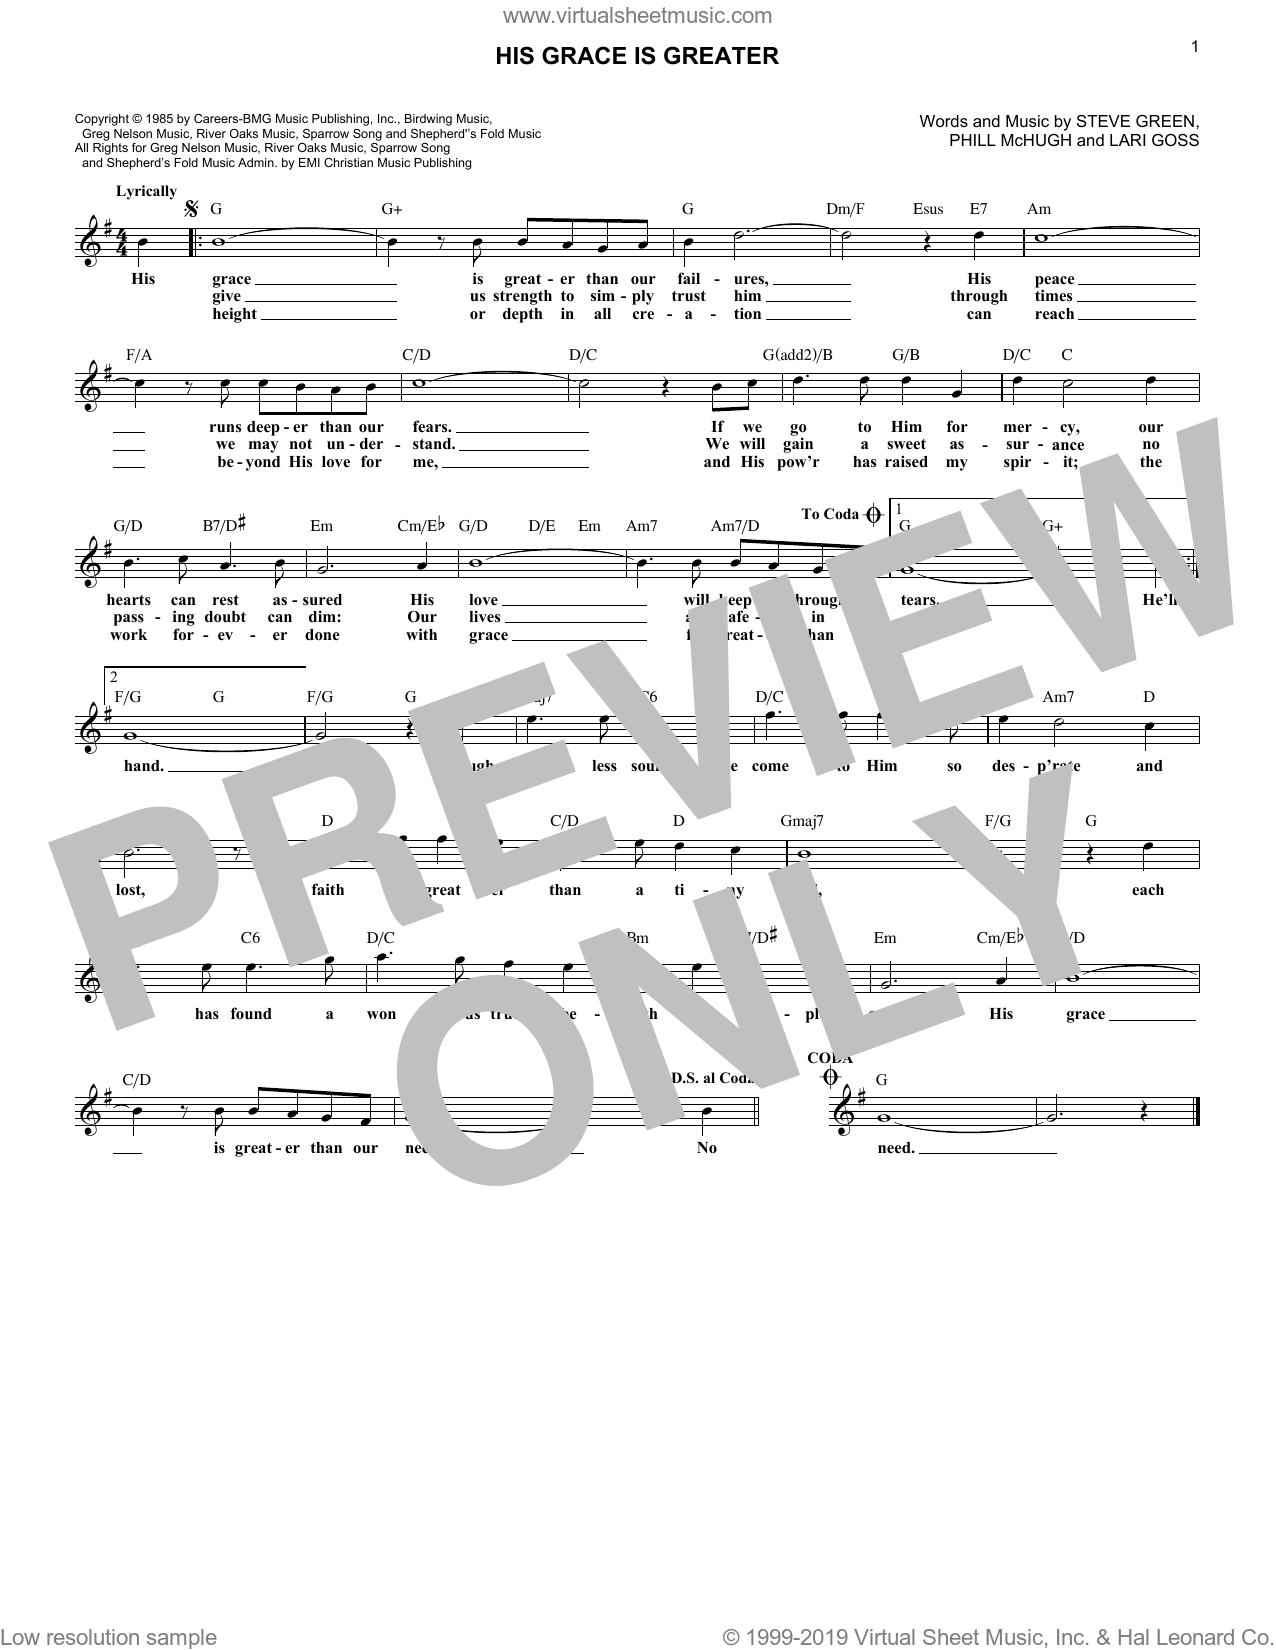 His Grace Is Greater sheet music for voice and other instruments (fake book) by Greg Nelson, Lari Goss, Phill McHugh and Steve Green, intermediate skill level